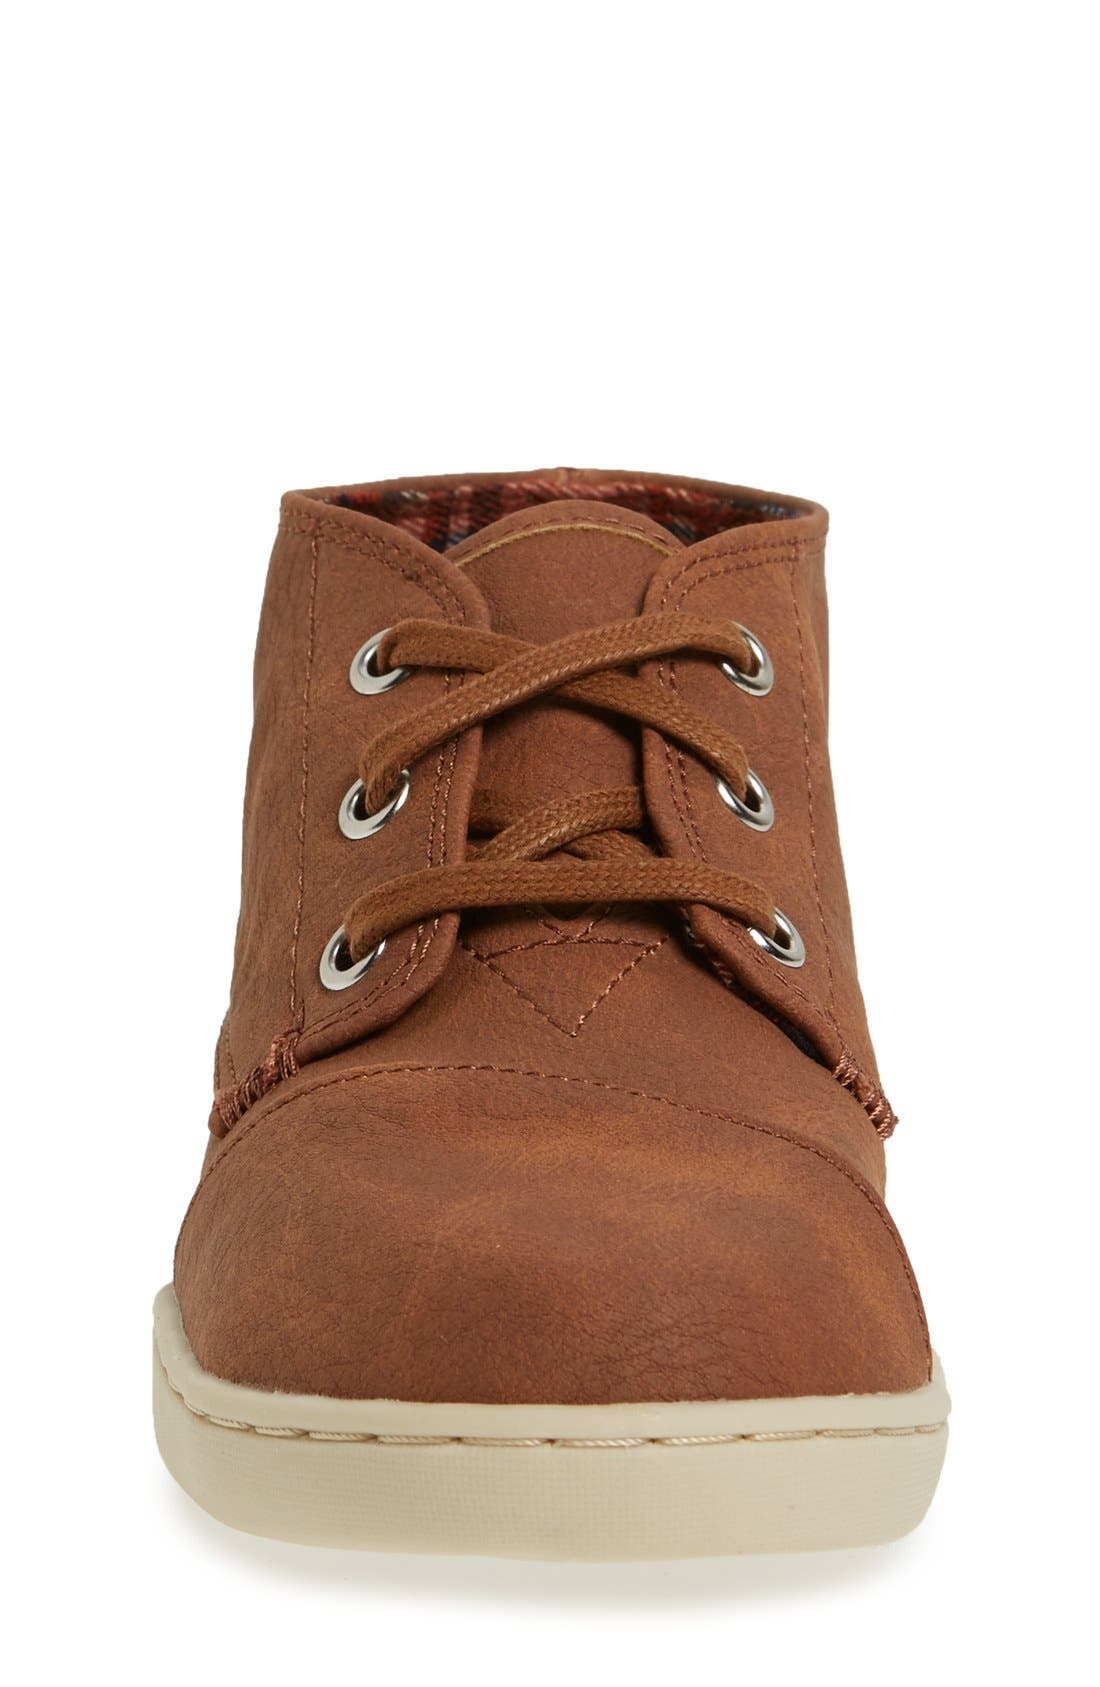 Alternate Image 3  - TOMS 'Paseo - Youth' Mid Boot (Toddler, Little Kid & Big Kid)